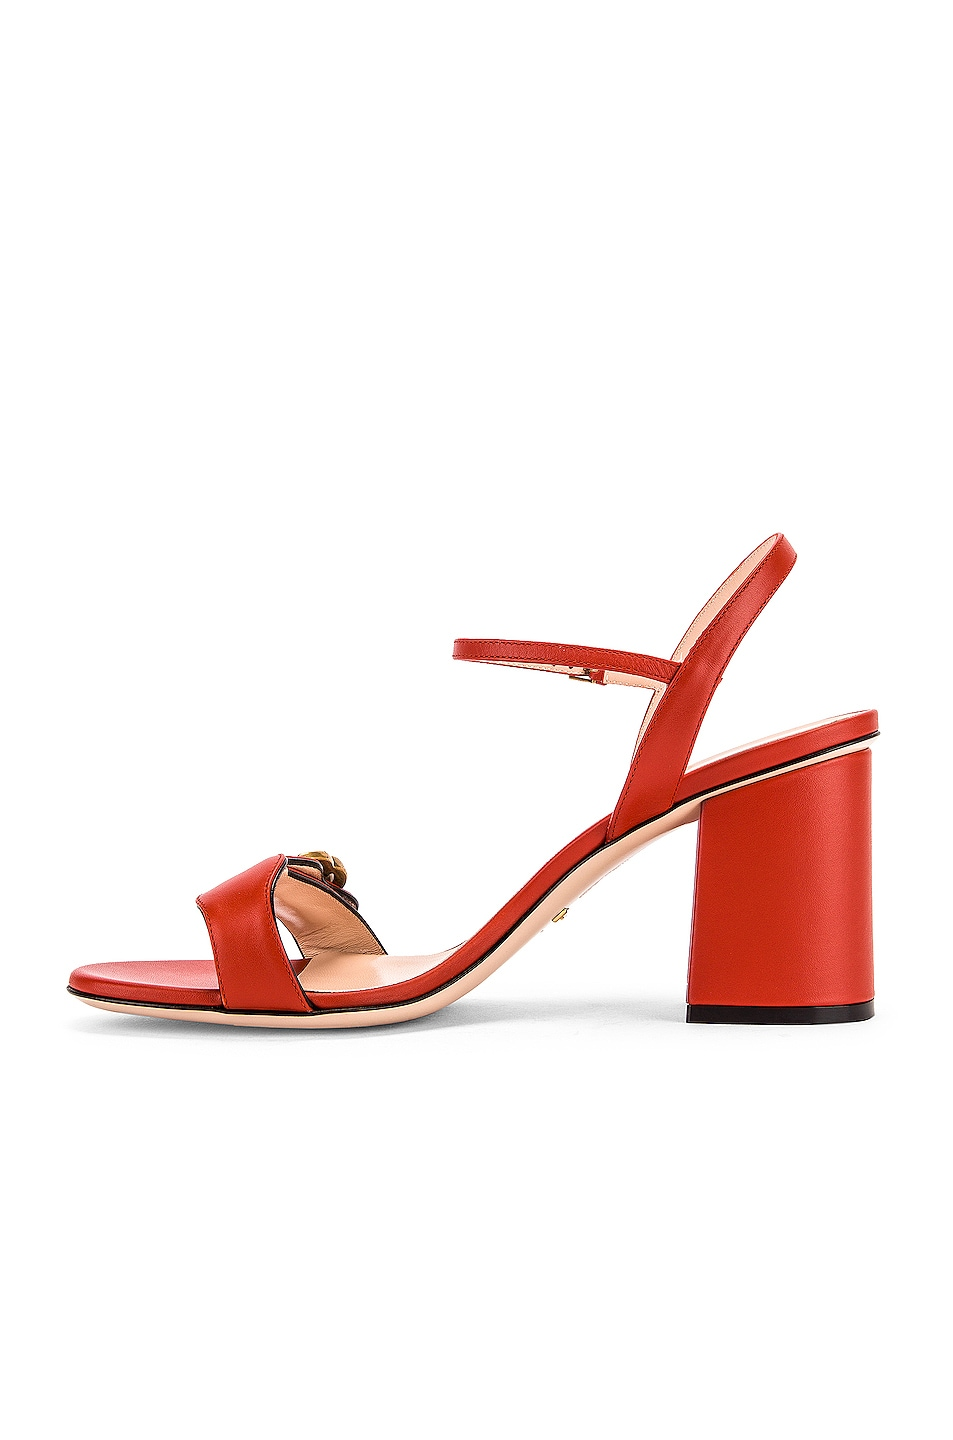 Image 5 of Gucci Marmont Sandals in Bright Pumpkin